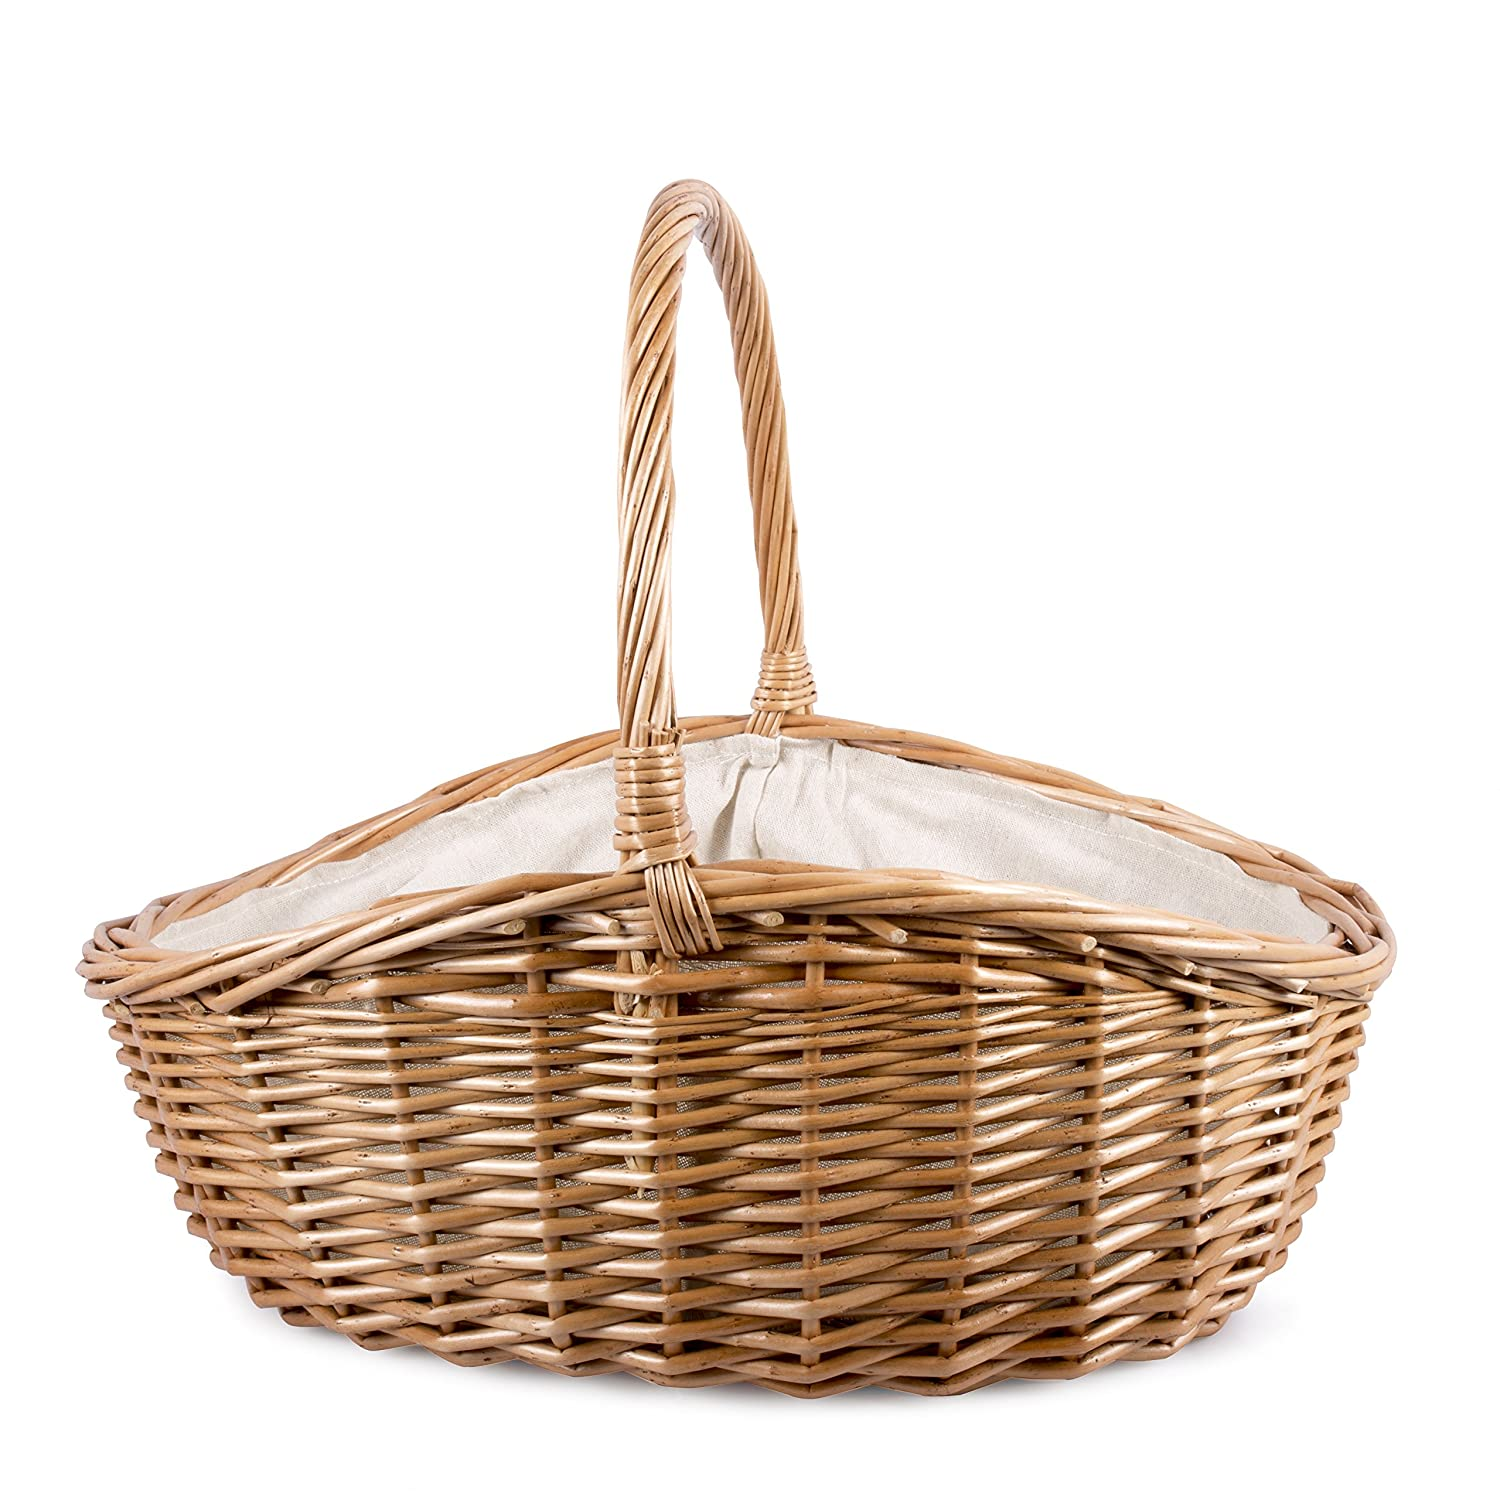 Lined High Handle Shopping Basket Home Decoration Storage Retail Display